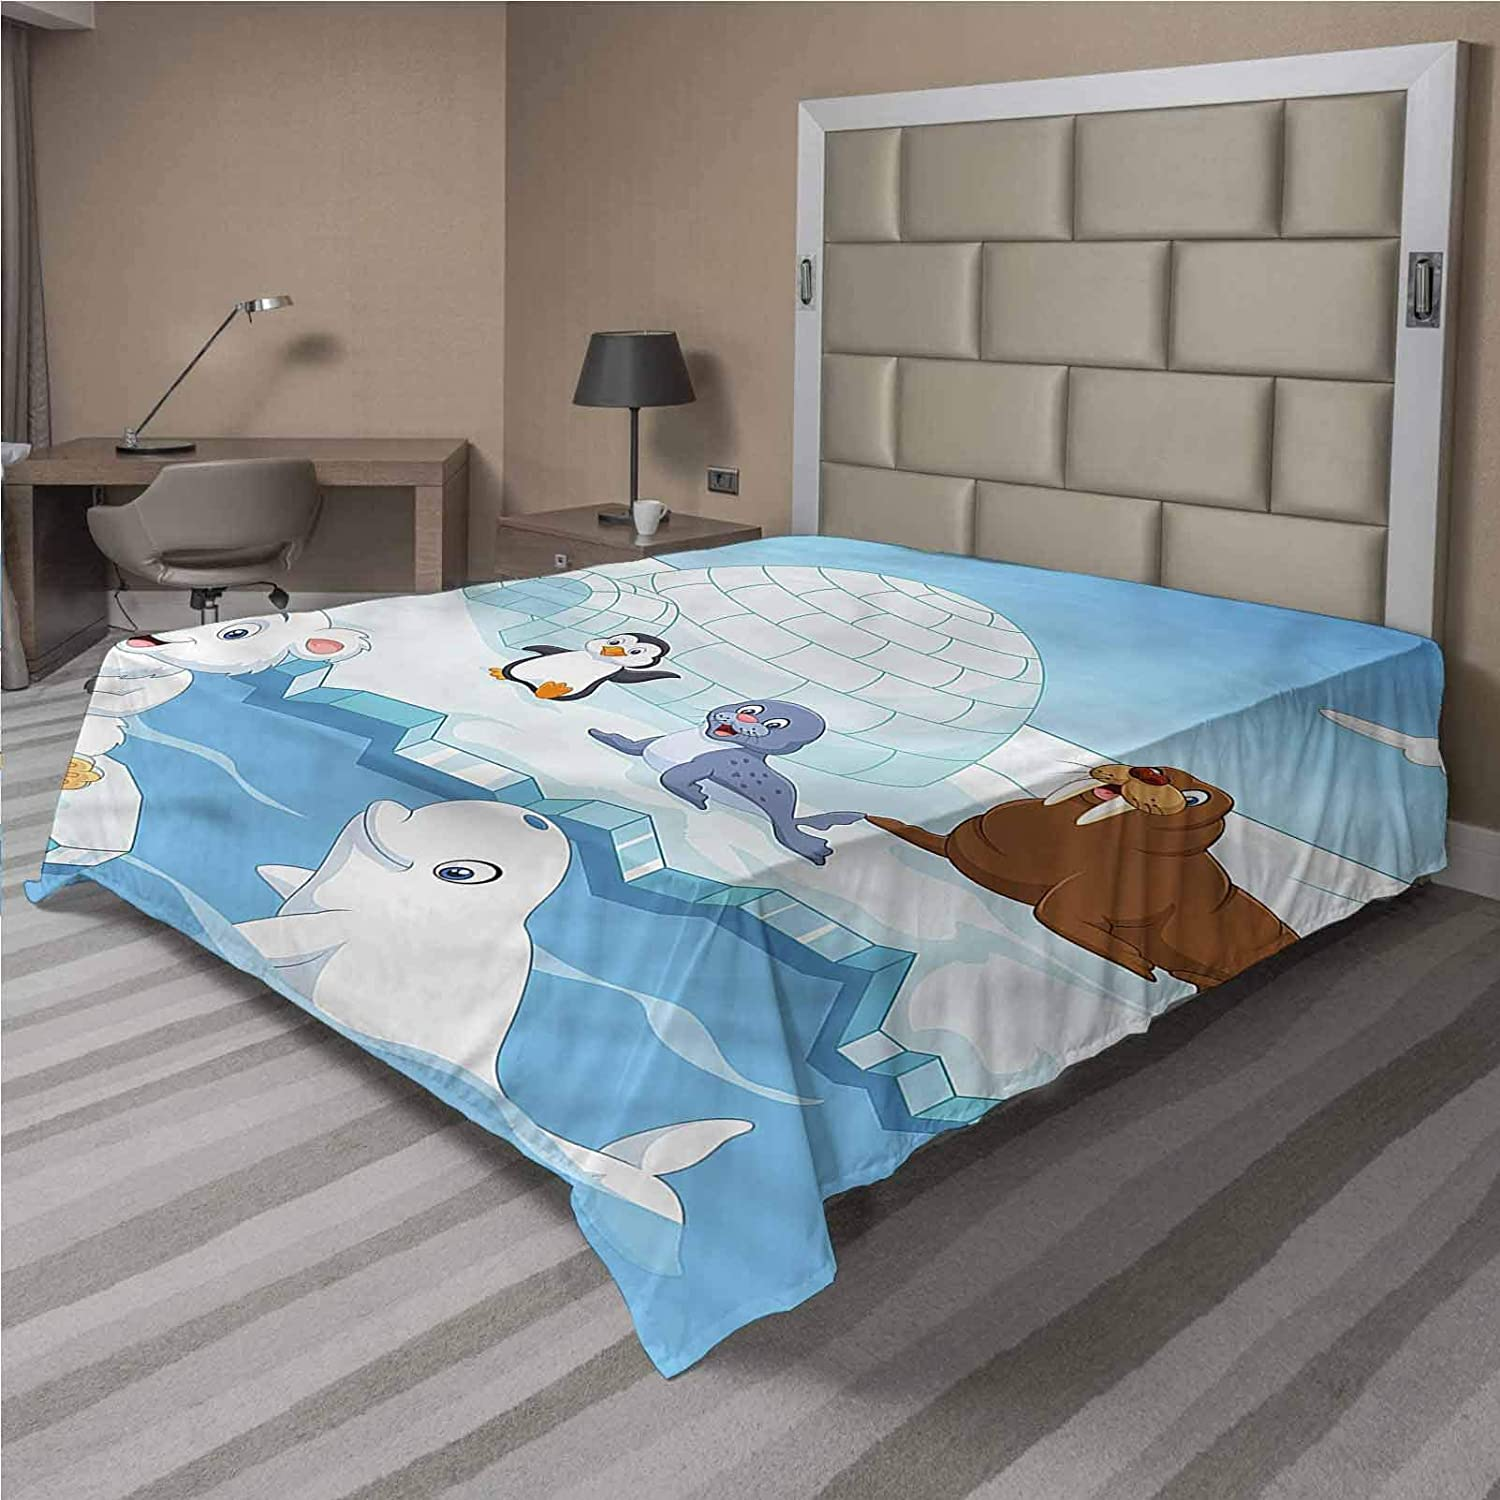 LCGGDB Kids Flat Top Sheet,Polar Bears Seal Penguins Soft Comfortable Top Sheet Decorative Bedding 1 Piece,Queen Size,Fit for Oversize and Extra Height Queen Bed